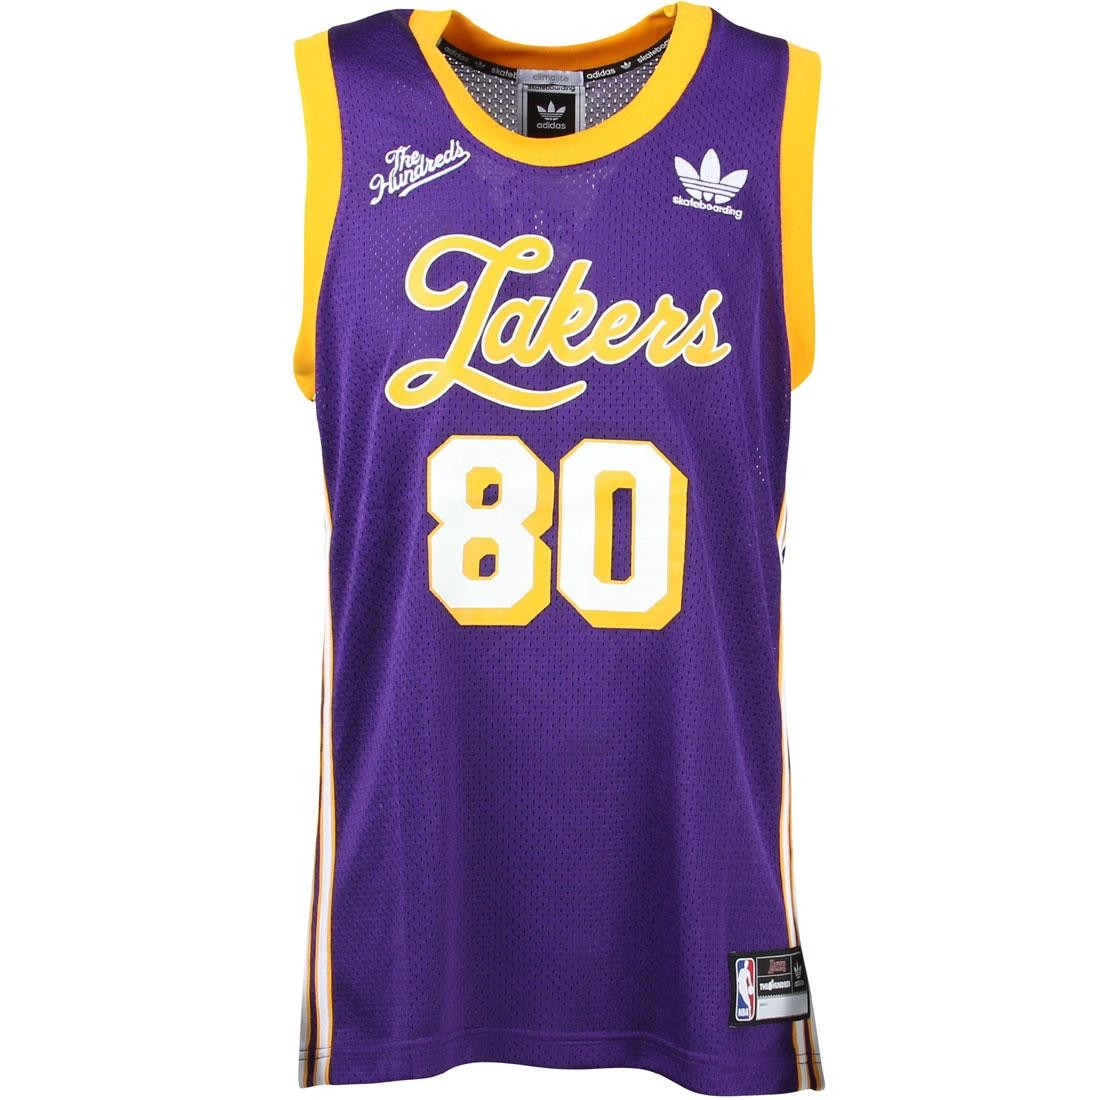 separation shoes edf3f 697f5 Adidas Skate x The Hundreds Men LA Lakers Jersey (purple / gold)